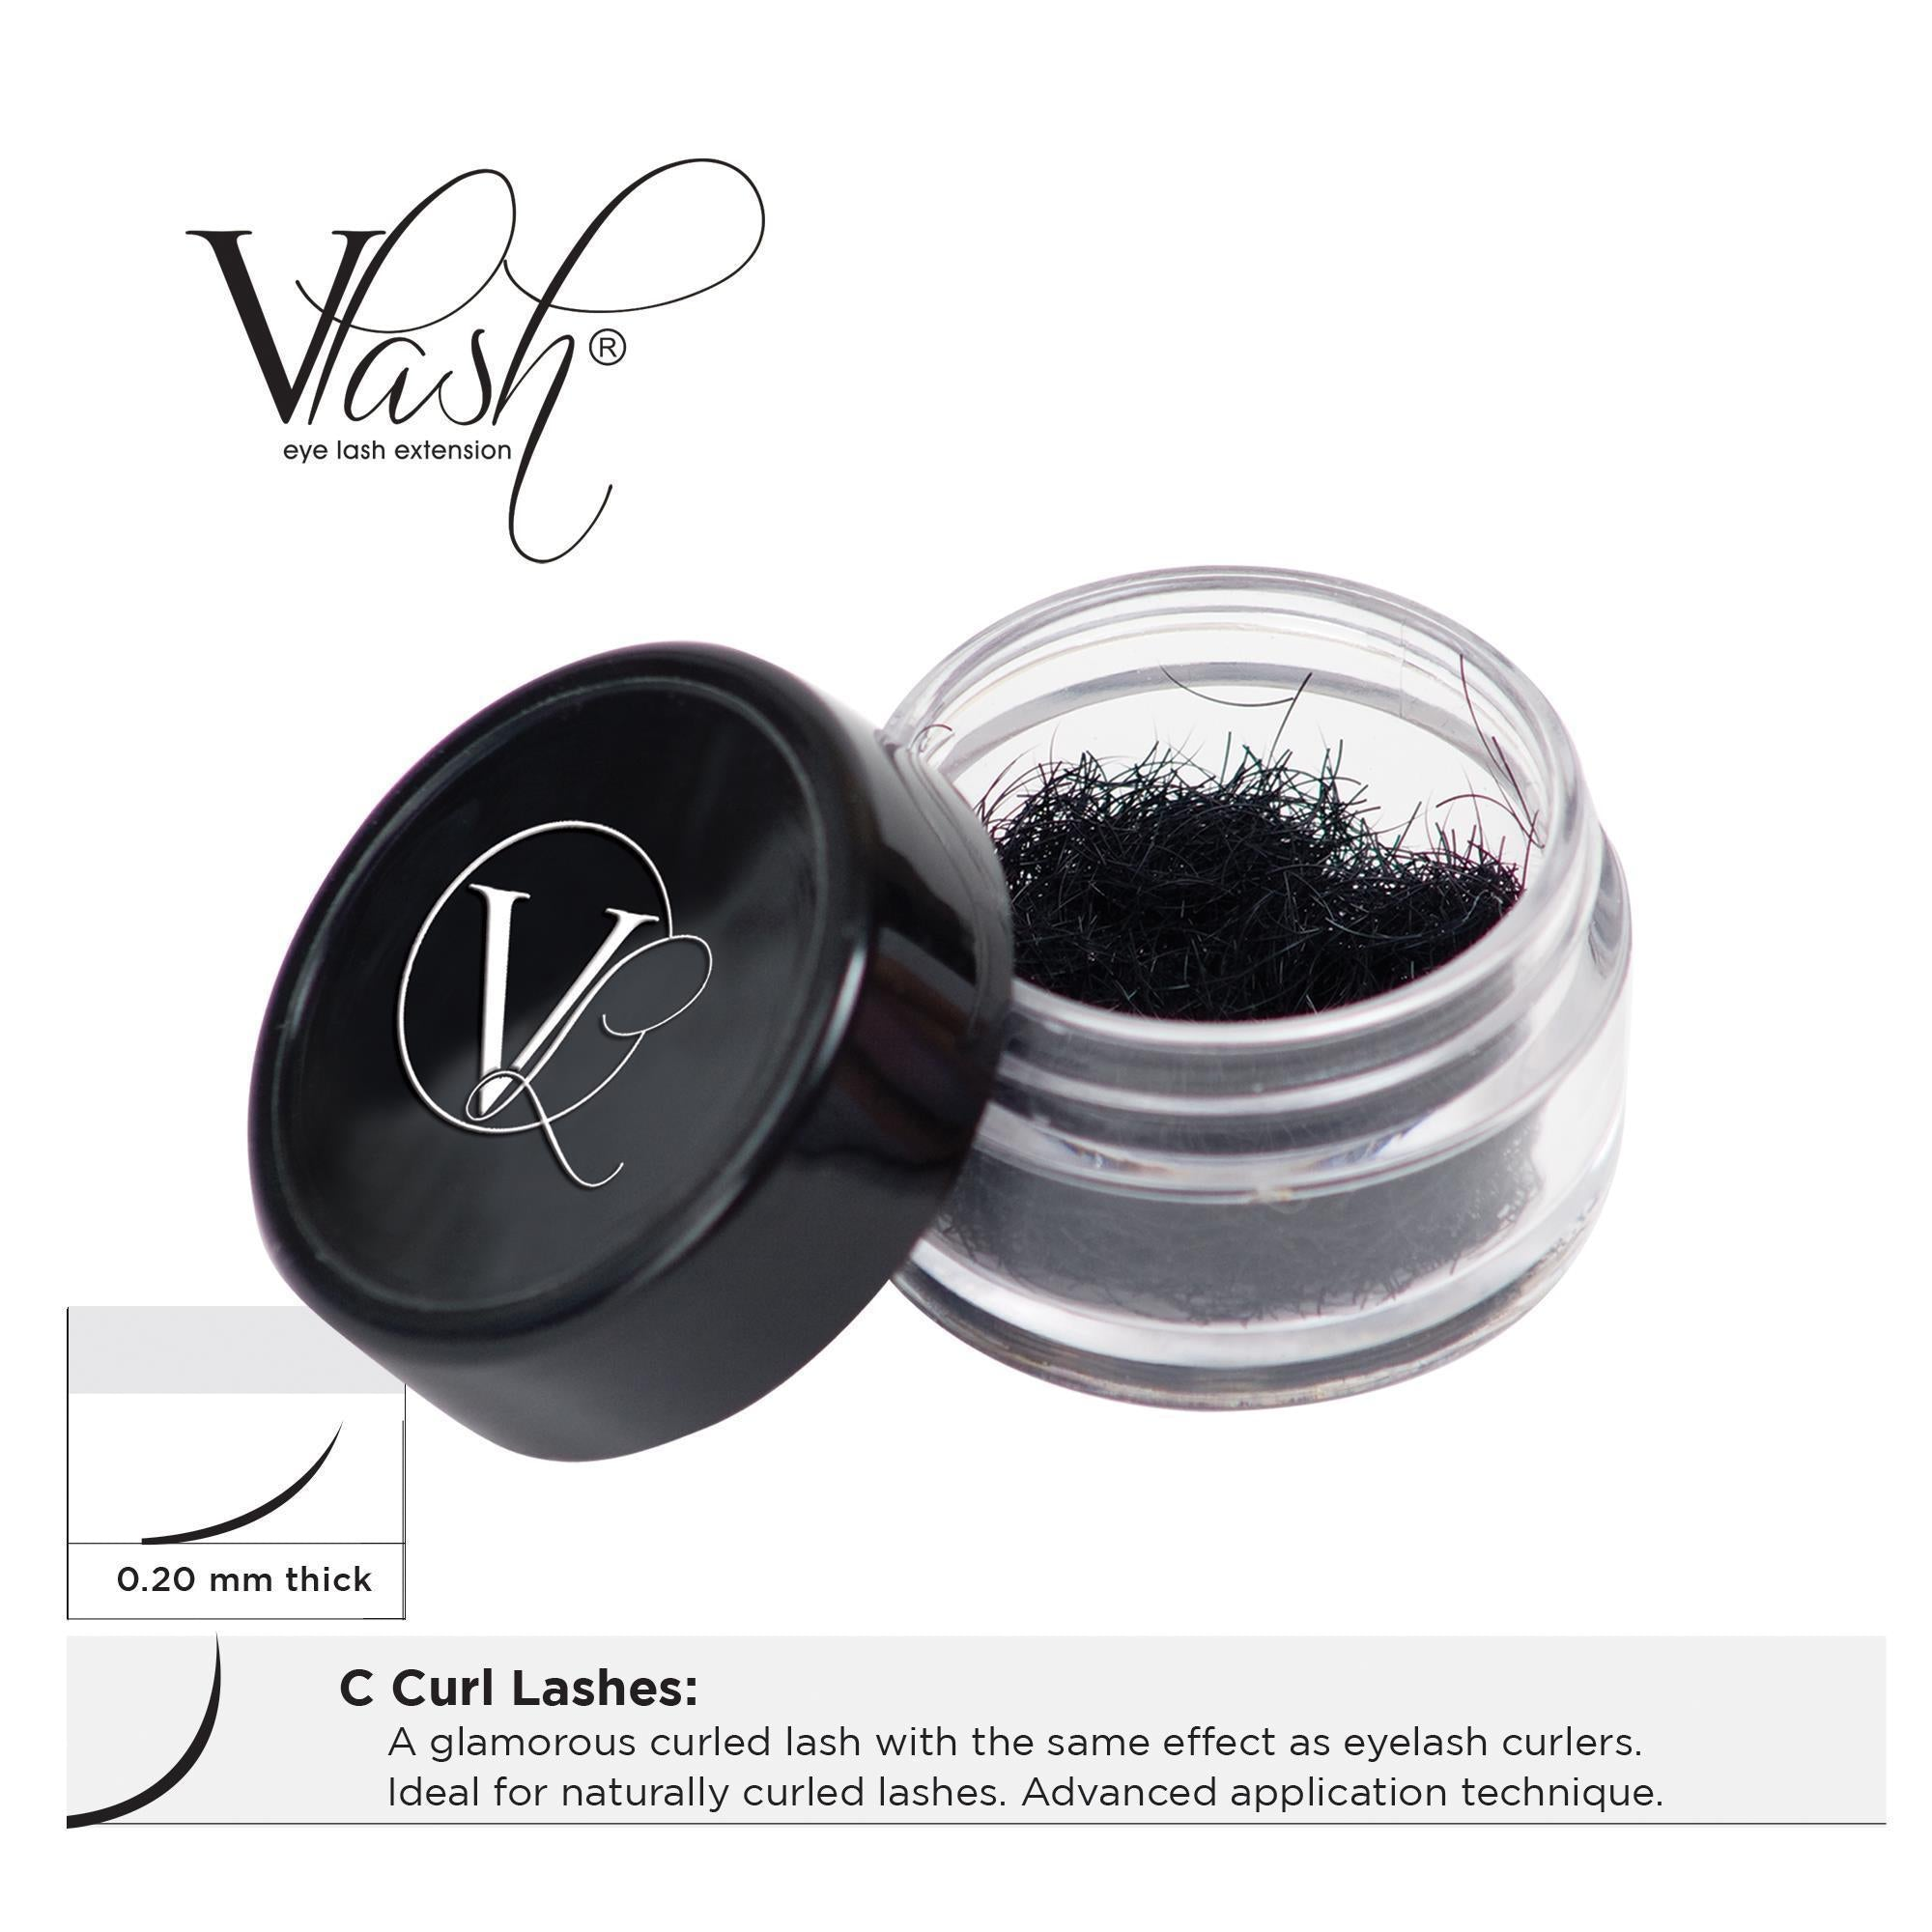 Lash Extensions, Strips, Acces 8mm VLash C Curl Jar Lashes / .20mm thick